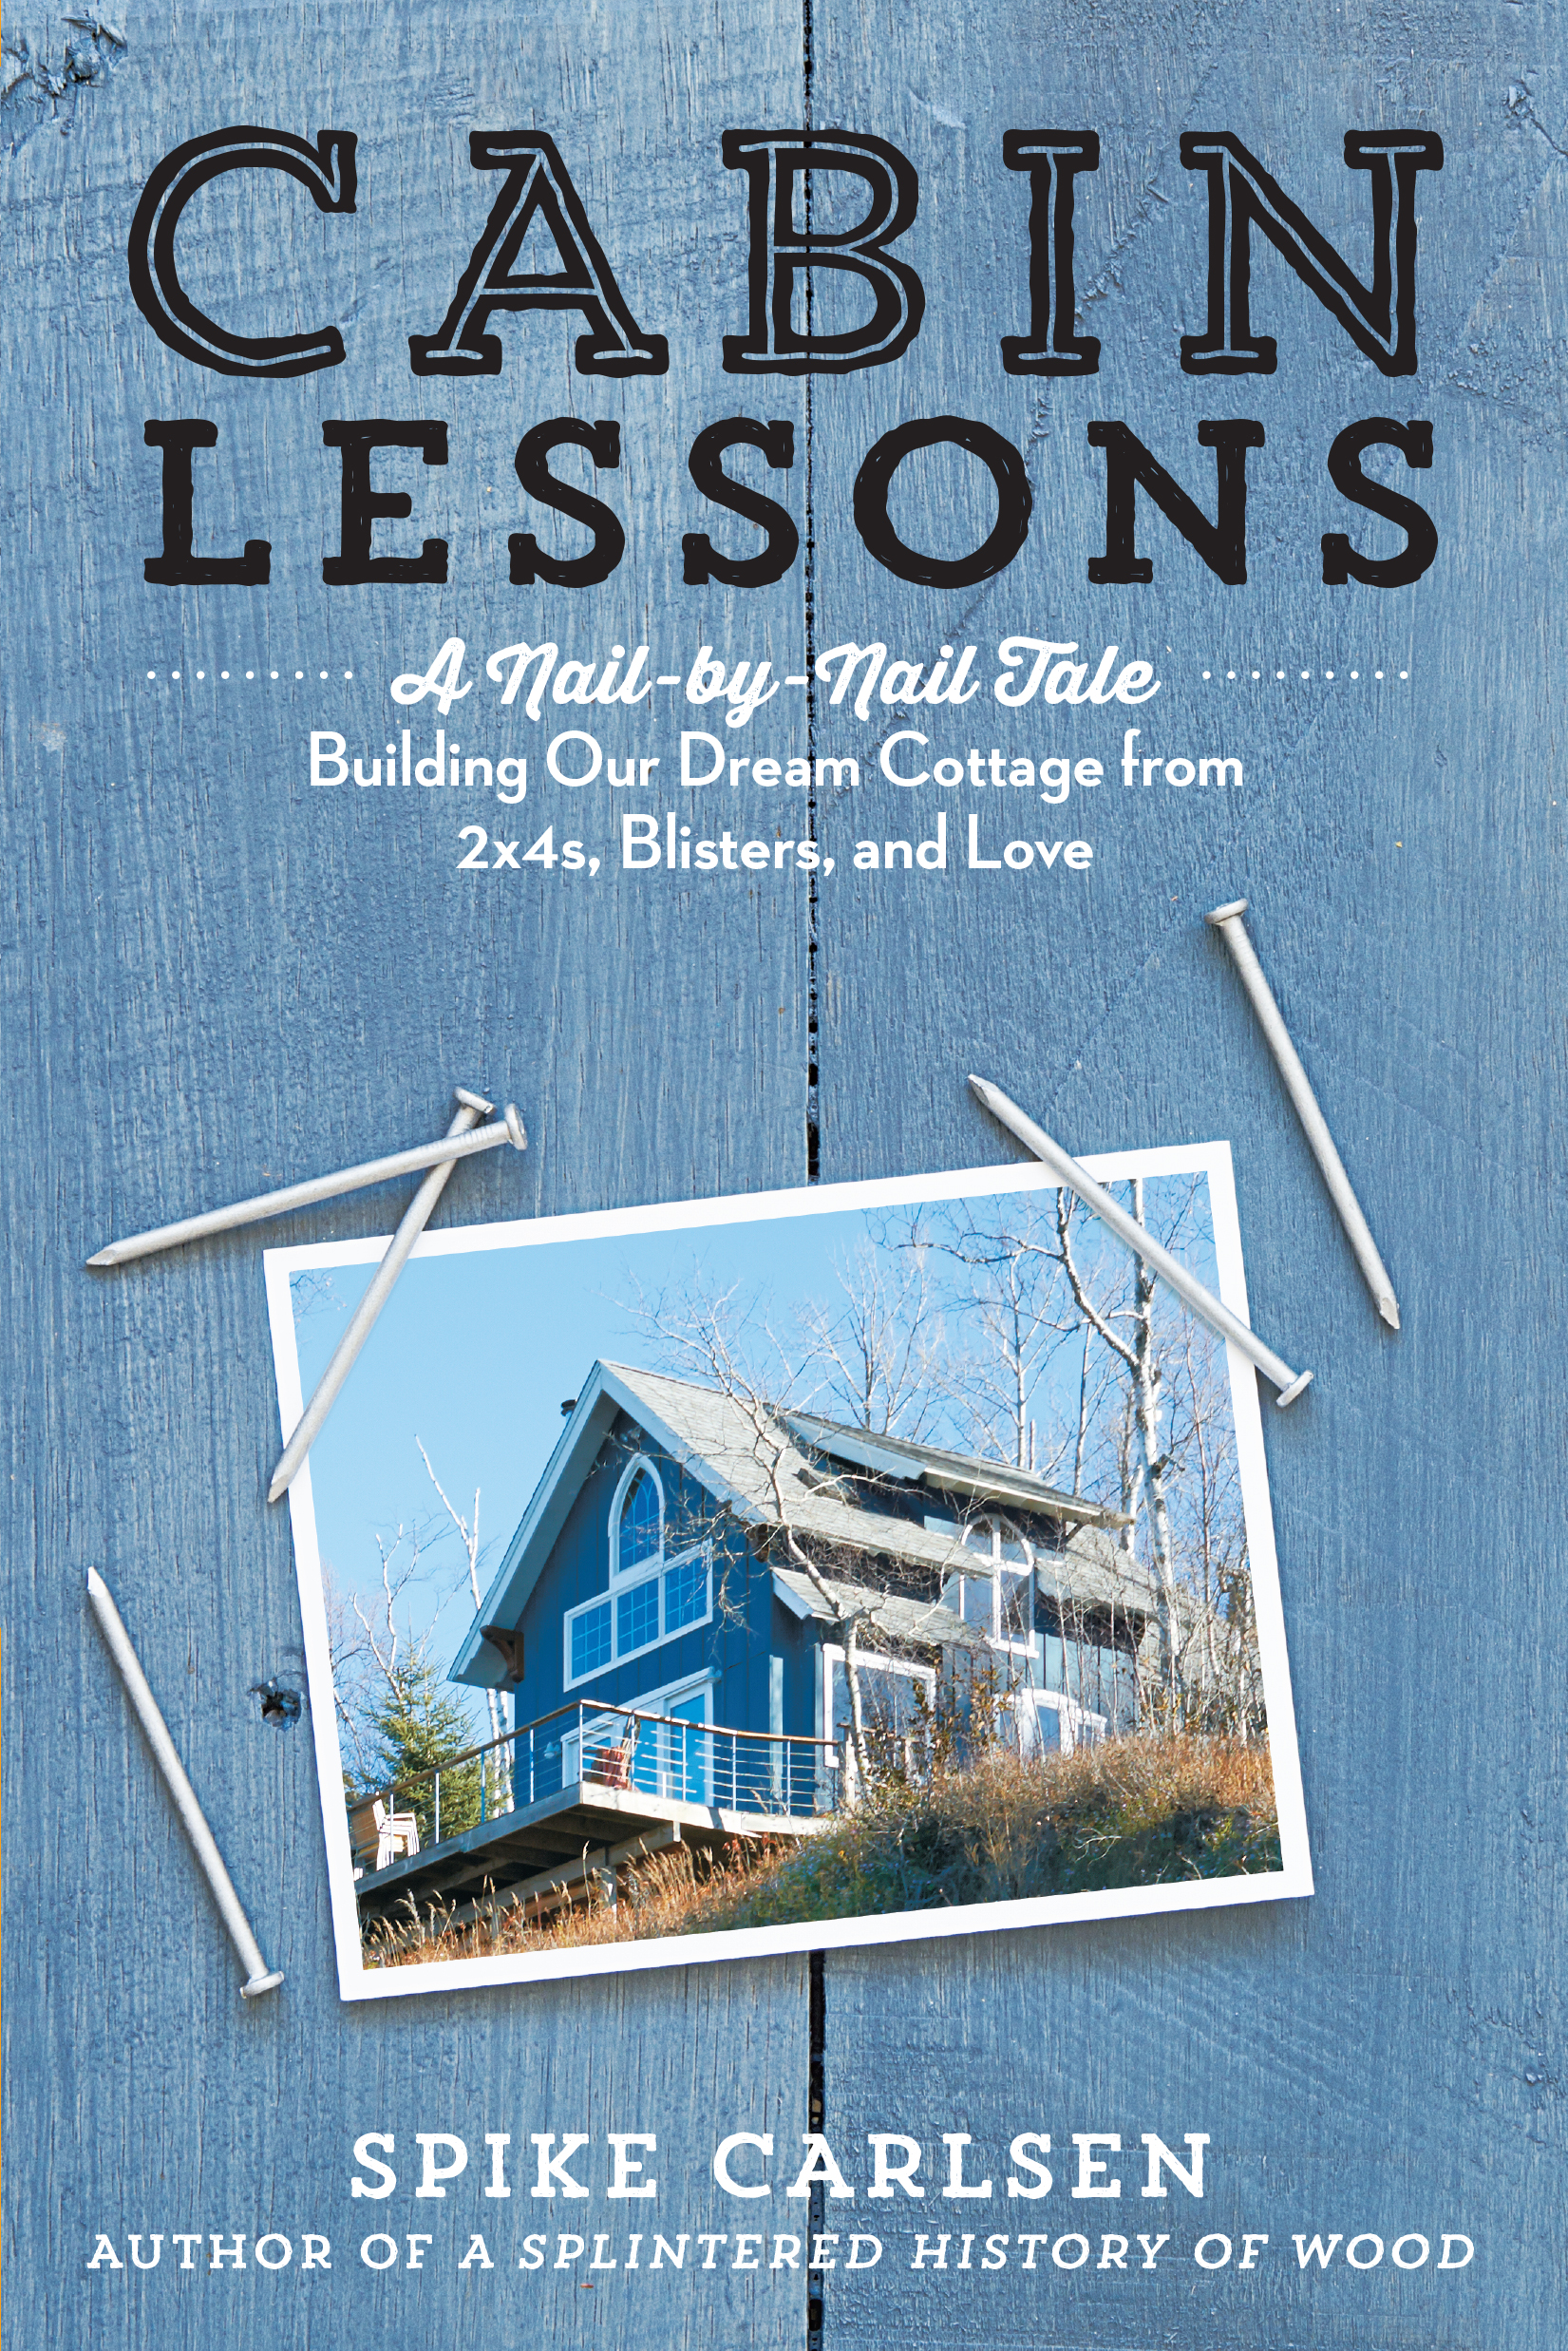 Cabin Lessons A Nail-by-Nail Tale: Building Our Dream Cottage from 2x4s, Blisters, and Love - Spike Carlsen